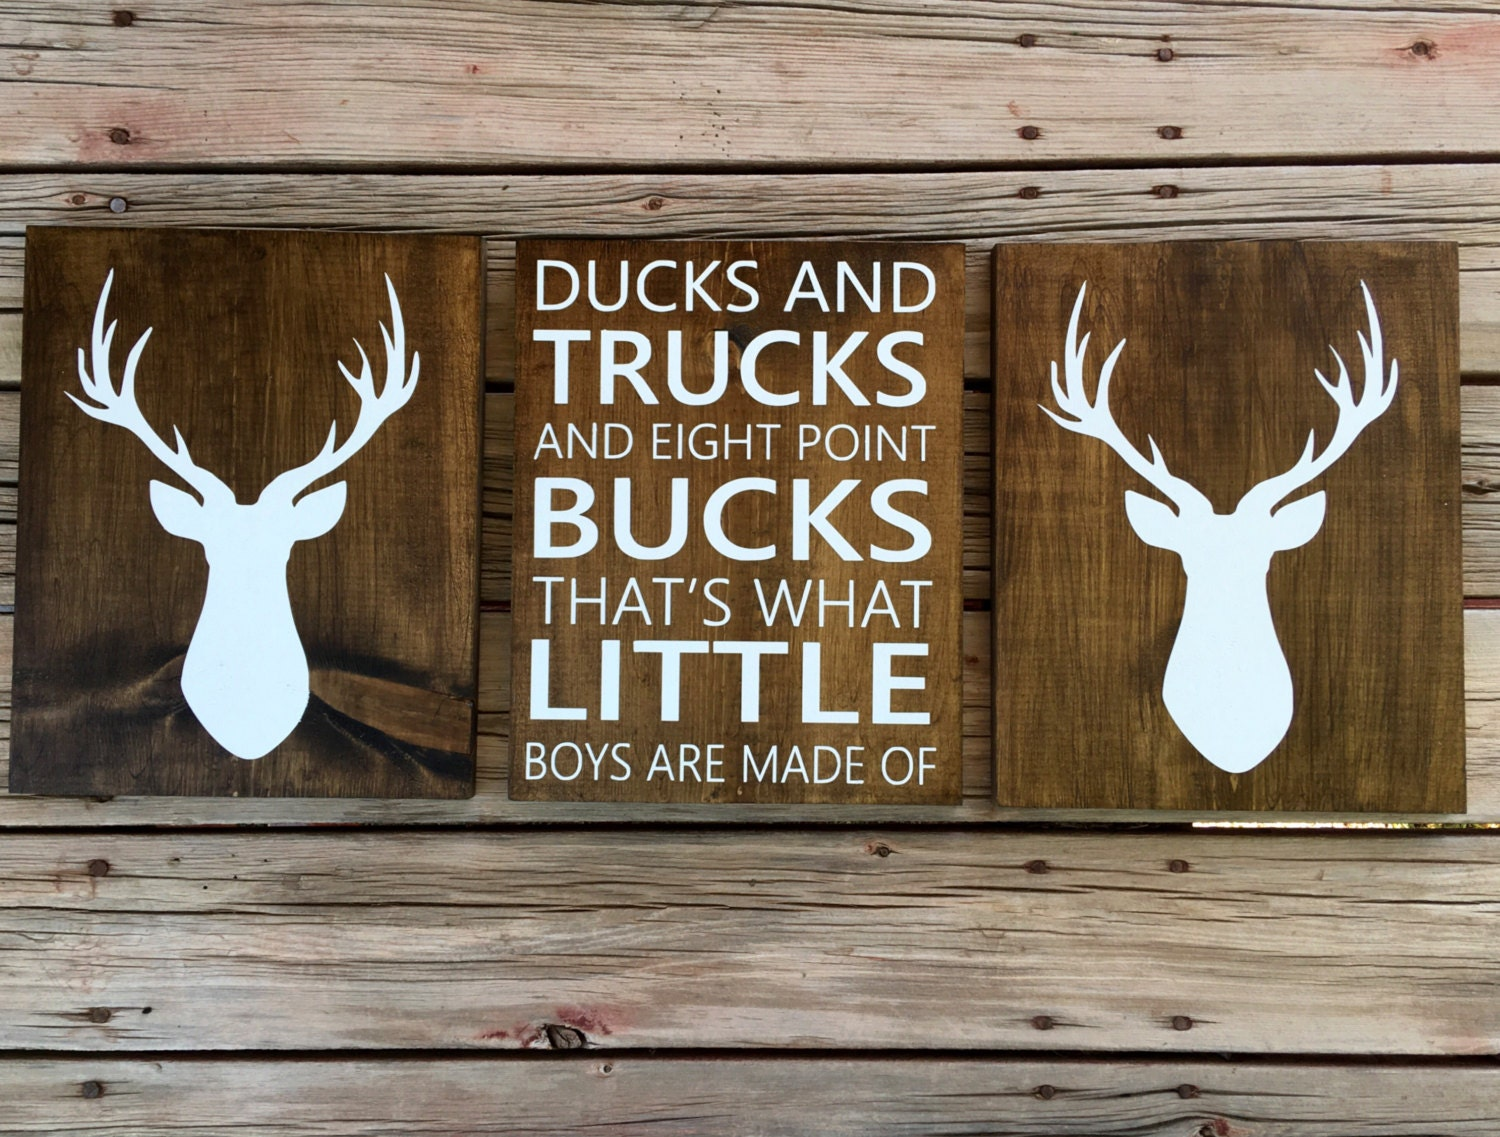 Ducks Trucks And Eight Point Bucks Thats What Little Boys Are